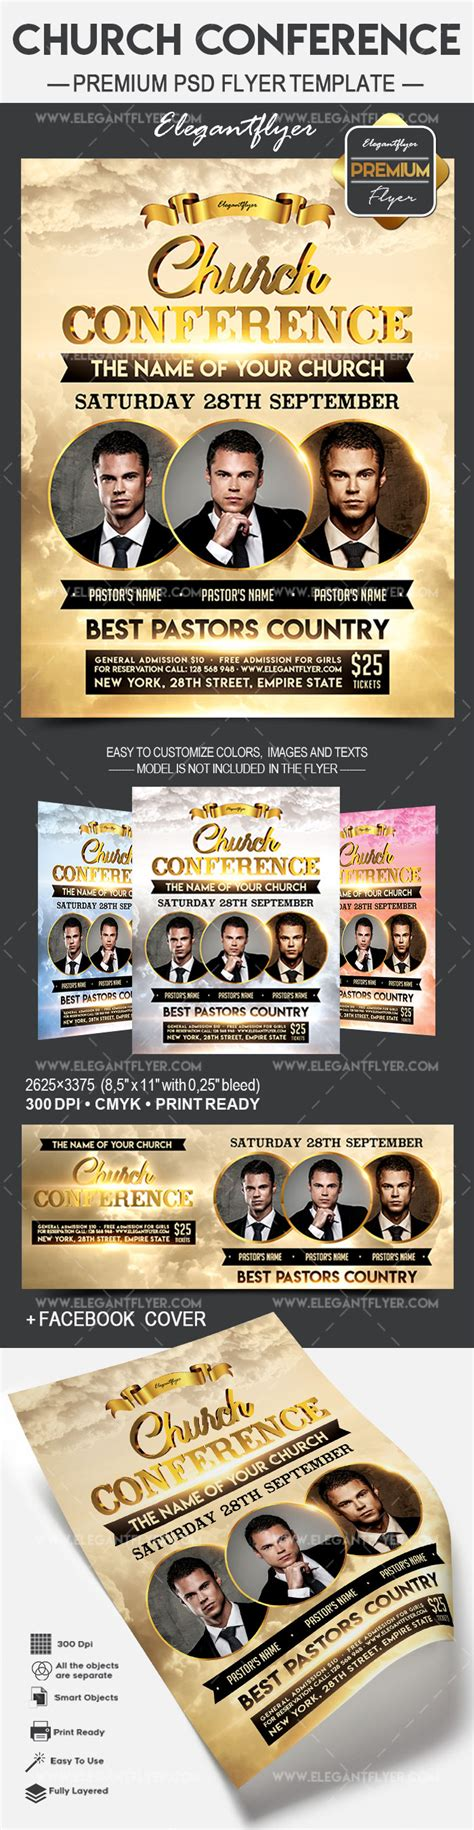 Church Conference Flyer Psd Template By Elegantflyer Conference Flyer Template